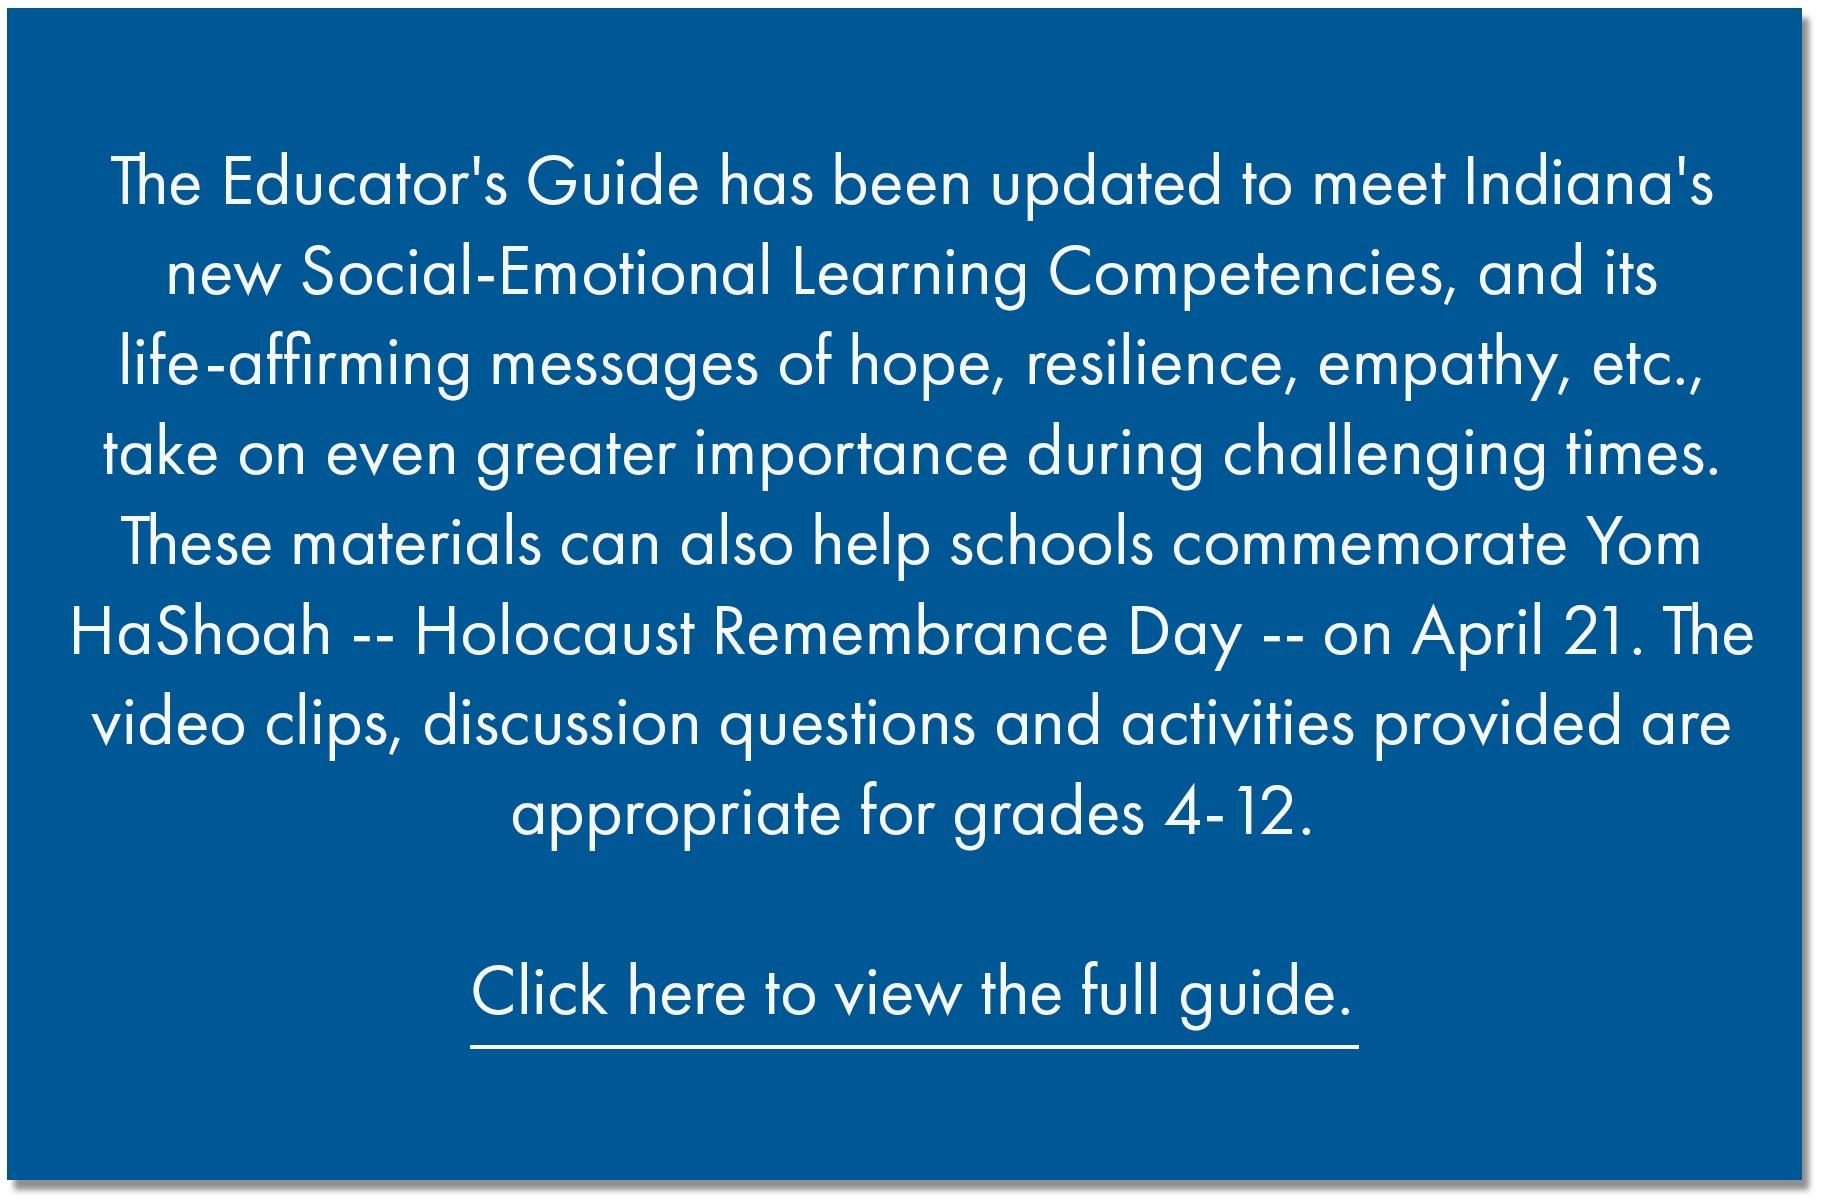 The Educator's Guide has been updated to meet Indiana's new Social-Emotional Learning Competencies, and its life-affirming messages of hope, resilience, empathy, etc., take on even greater importance during challenging times. These materials can also help schools commemorate Yom HaShoah -- Holocaust Remembrance Day -- on April 21. The video clips, discussion questions and activities provided are appropriate for grades  - 12.   Click here to view the full guide.